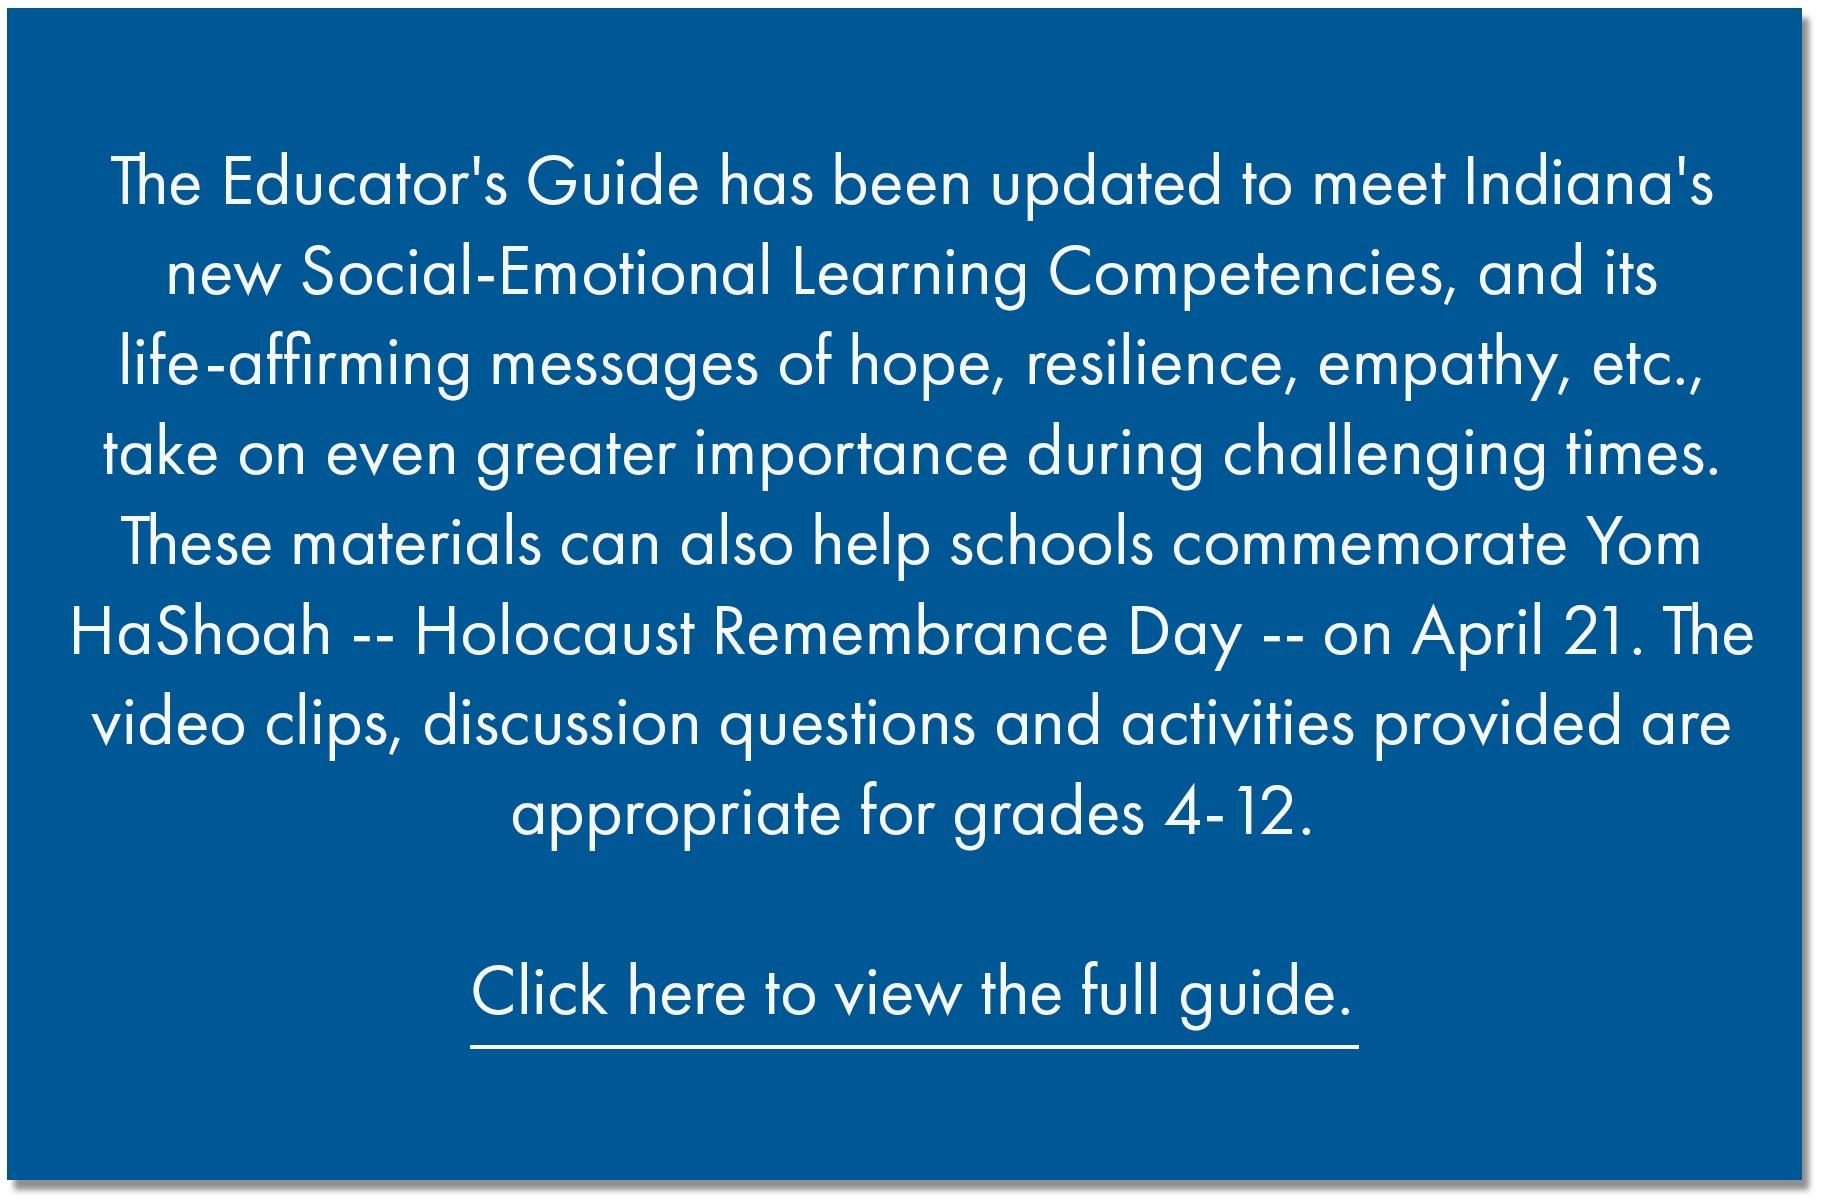 The Educator's Guide has been updated to meet Indiana's new Social-Emotional Learning Competencies, and its life-affirming messages of hope, resilience, empathy, etc., take on even greater importance during challenging times. These materials can also help schools commemorate Yom HaShoah -- Holocaust Remembrance Day -- on April 21. The video clips, discussion questions and activities provided are appropriate for grades  - 12.   Click here to view the full guide.